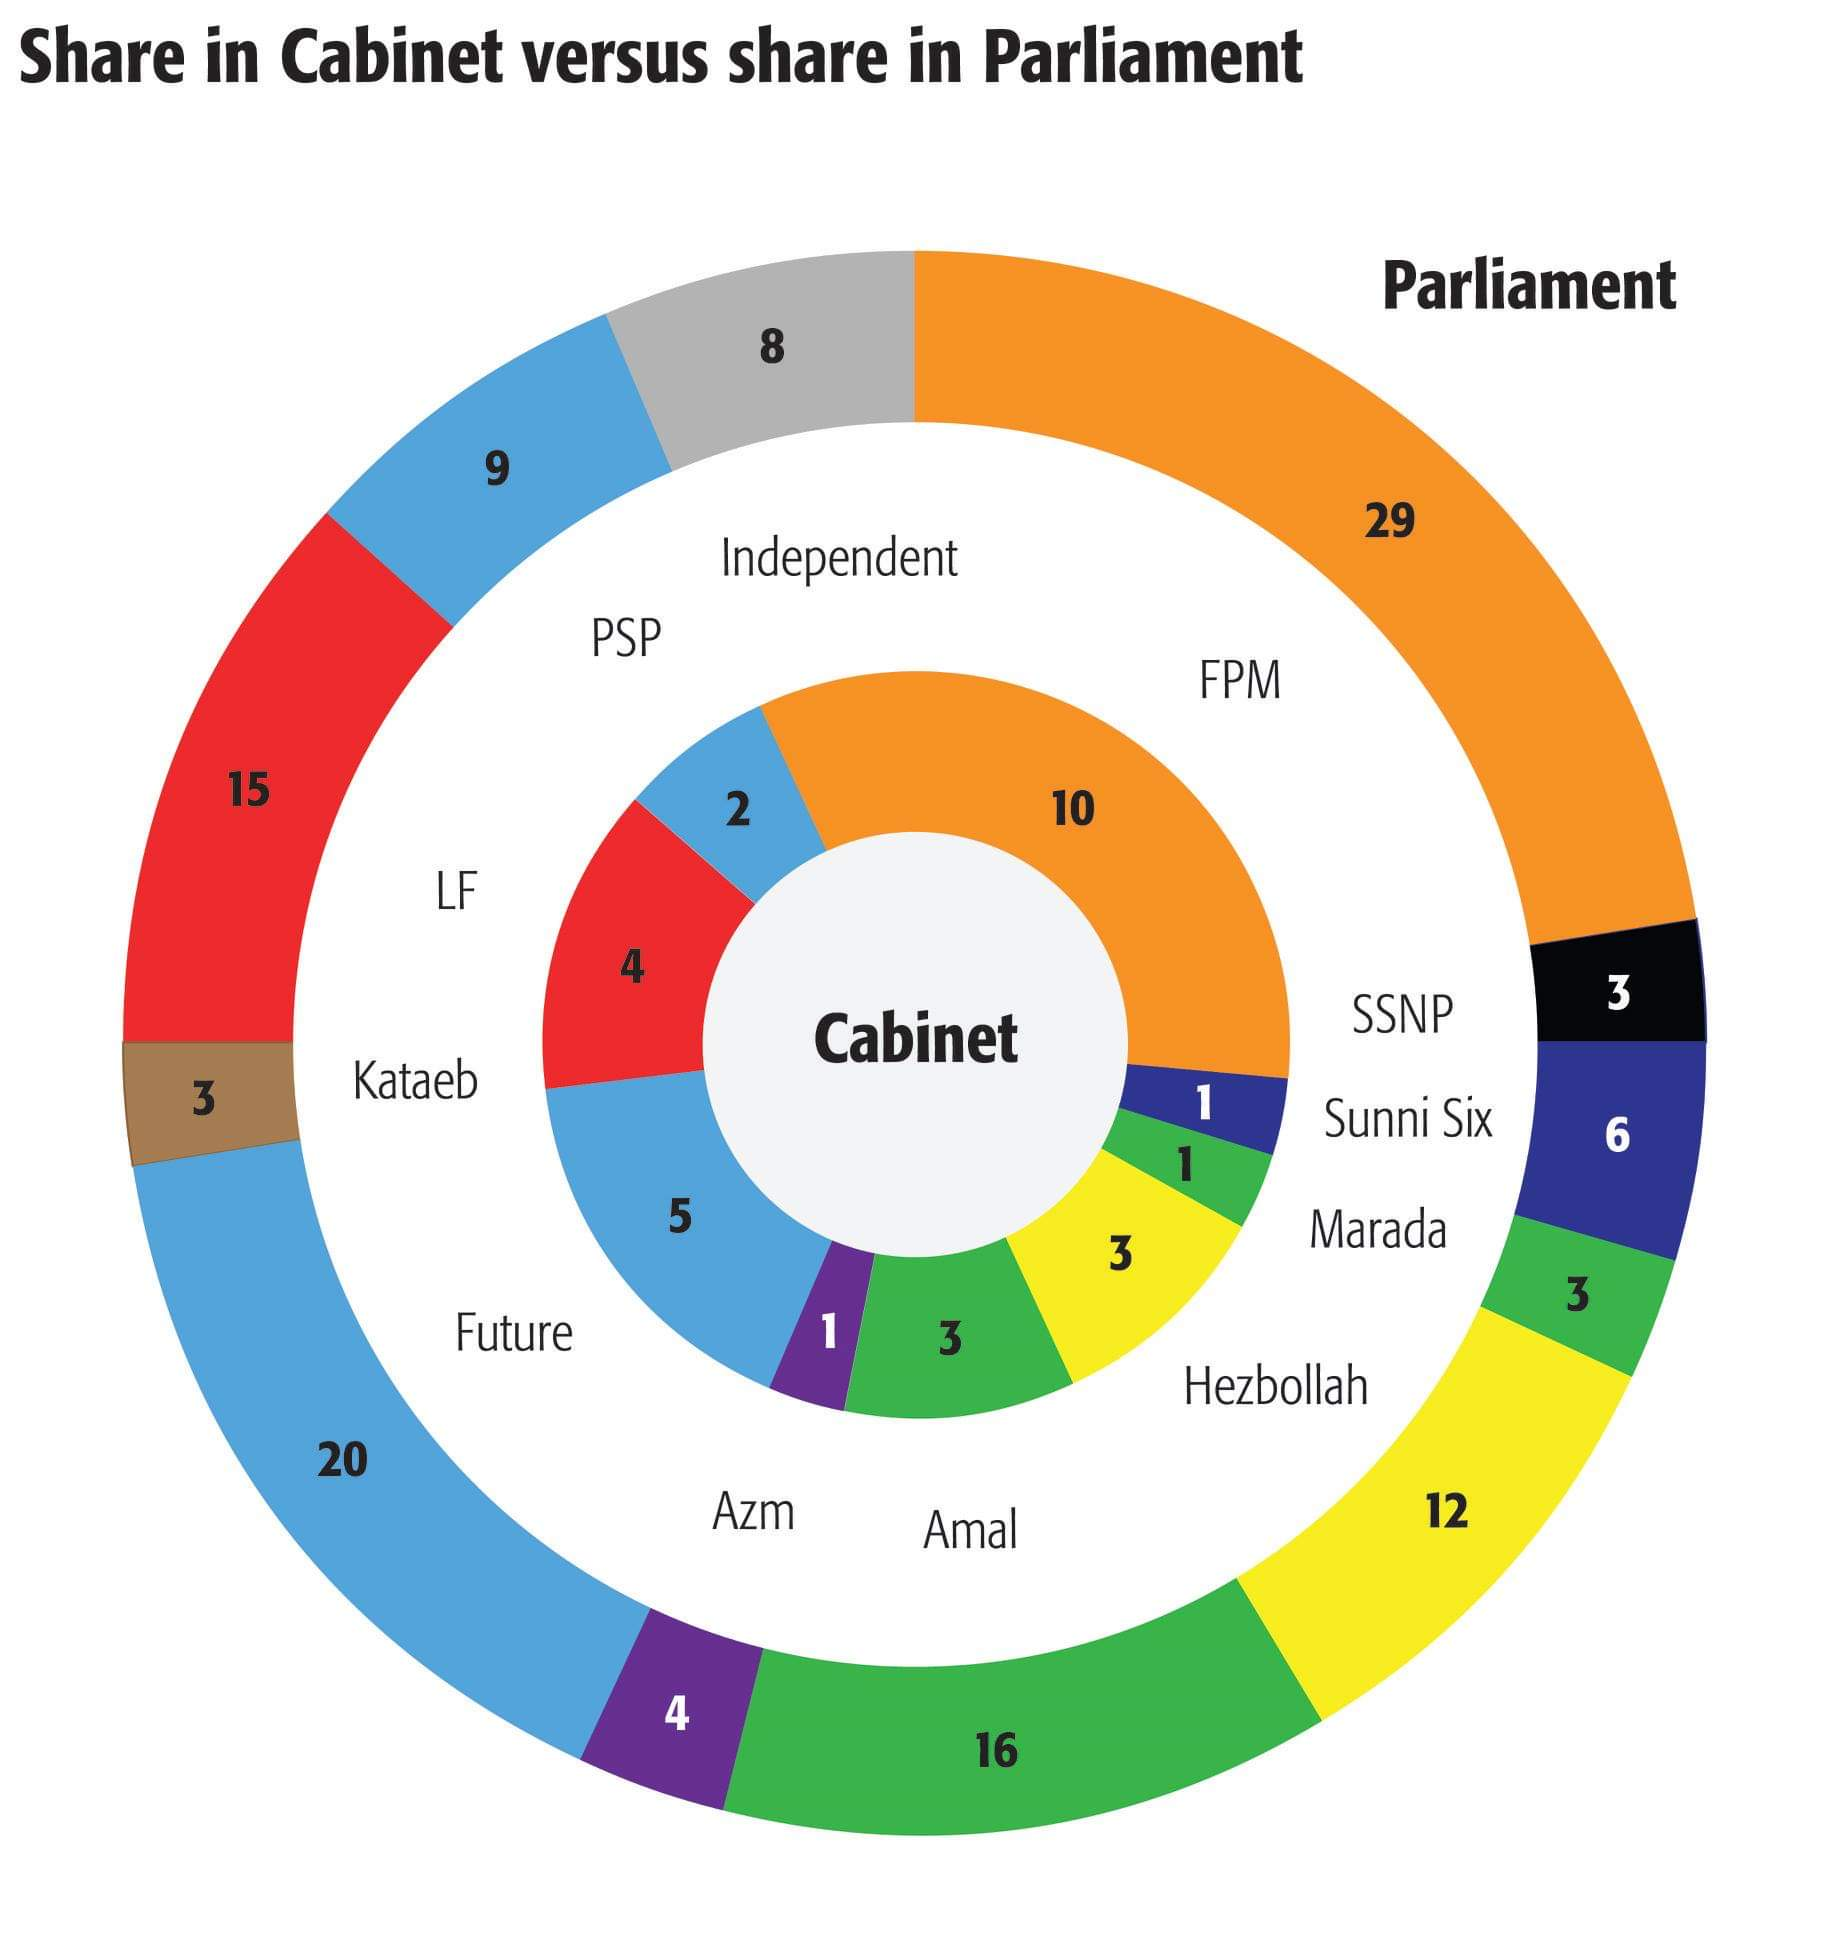 Share in Cabinet versus share in Parliament - Infographic courtesy of Benjamin Redd for The Daily Star